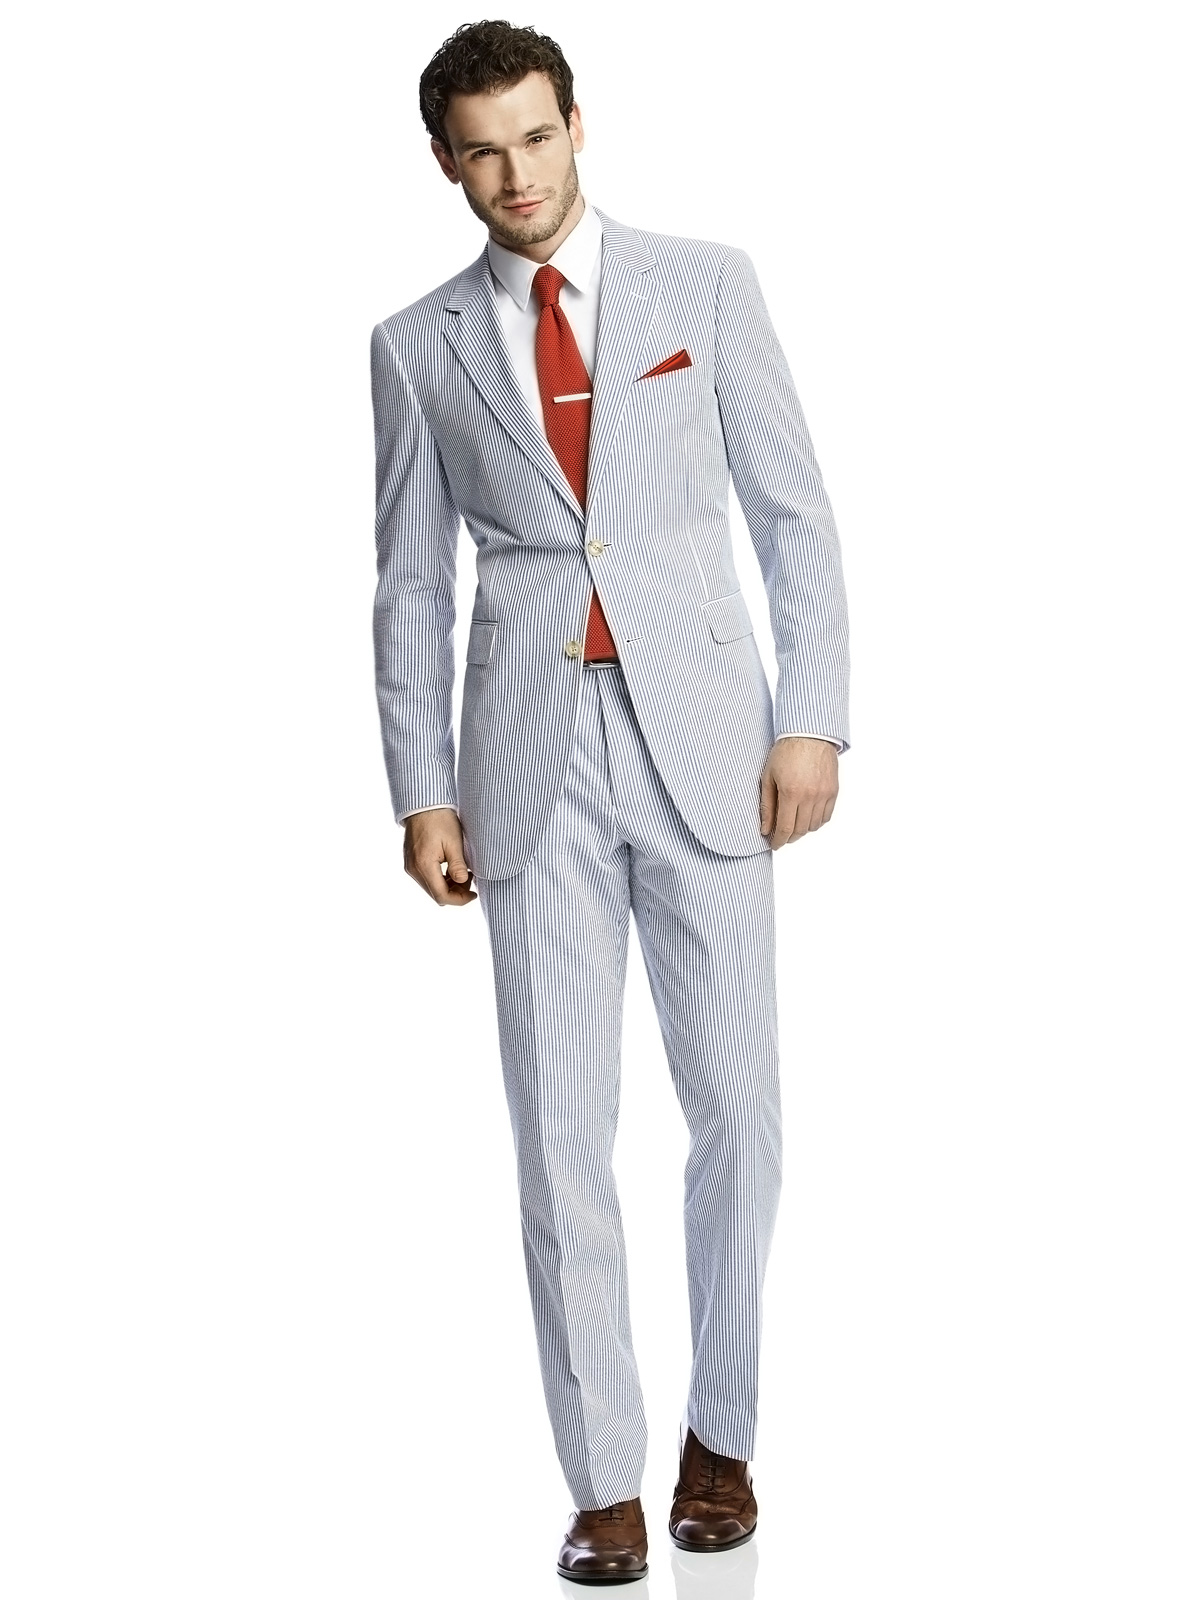 Shop for men's seersucker suits online at rutor-org.ga Browse the latest seersucker styles for men from Jos. A Bank. FREE shipping on orders over $